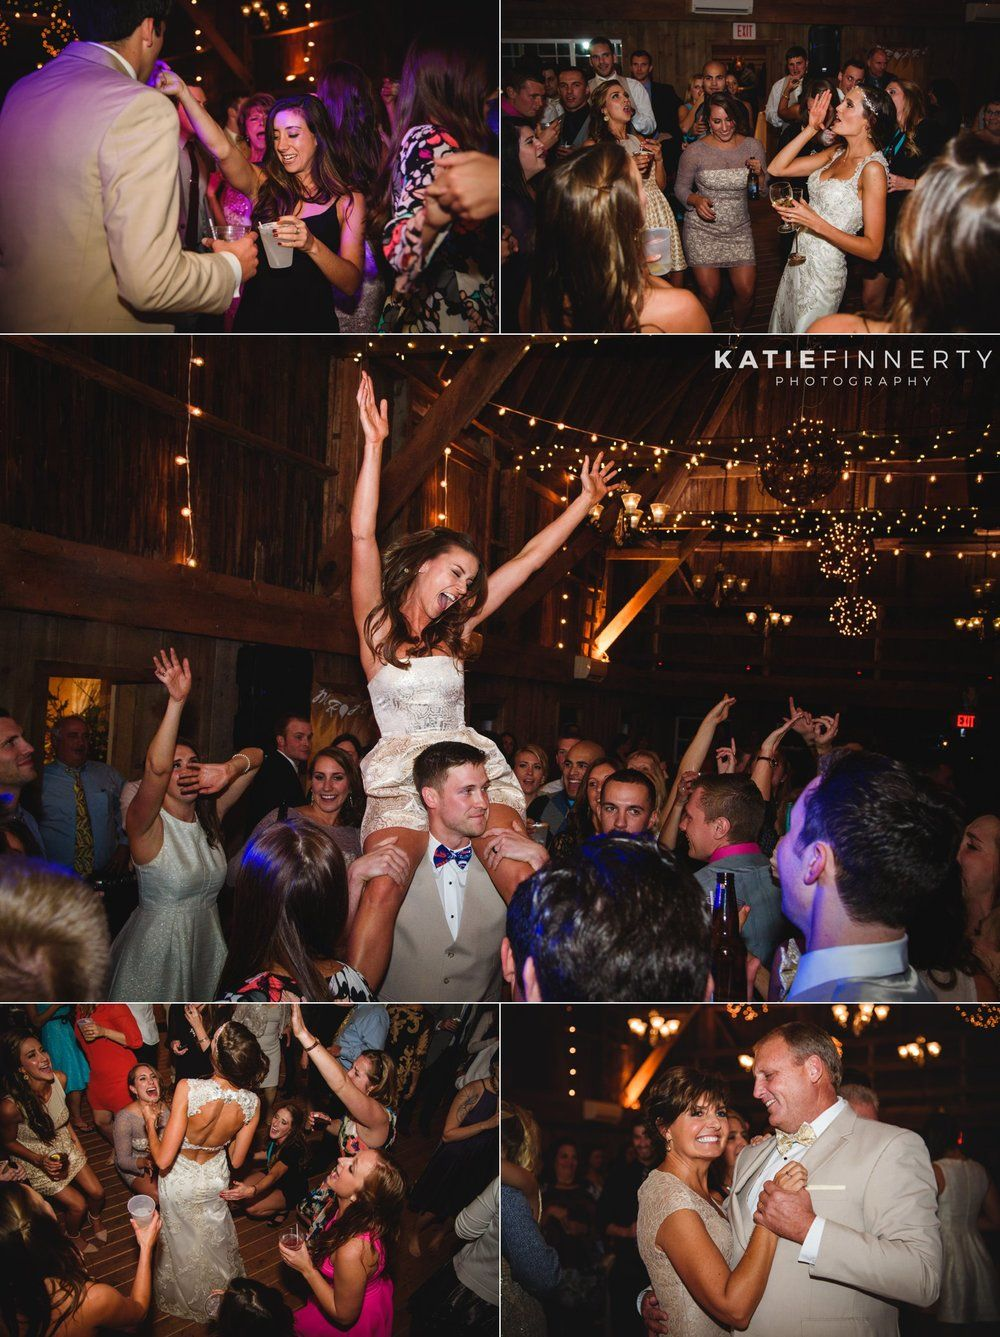 Dance Candids During This Barn Wedding Reception At Twin Silos In Livonia